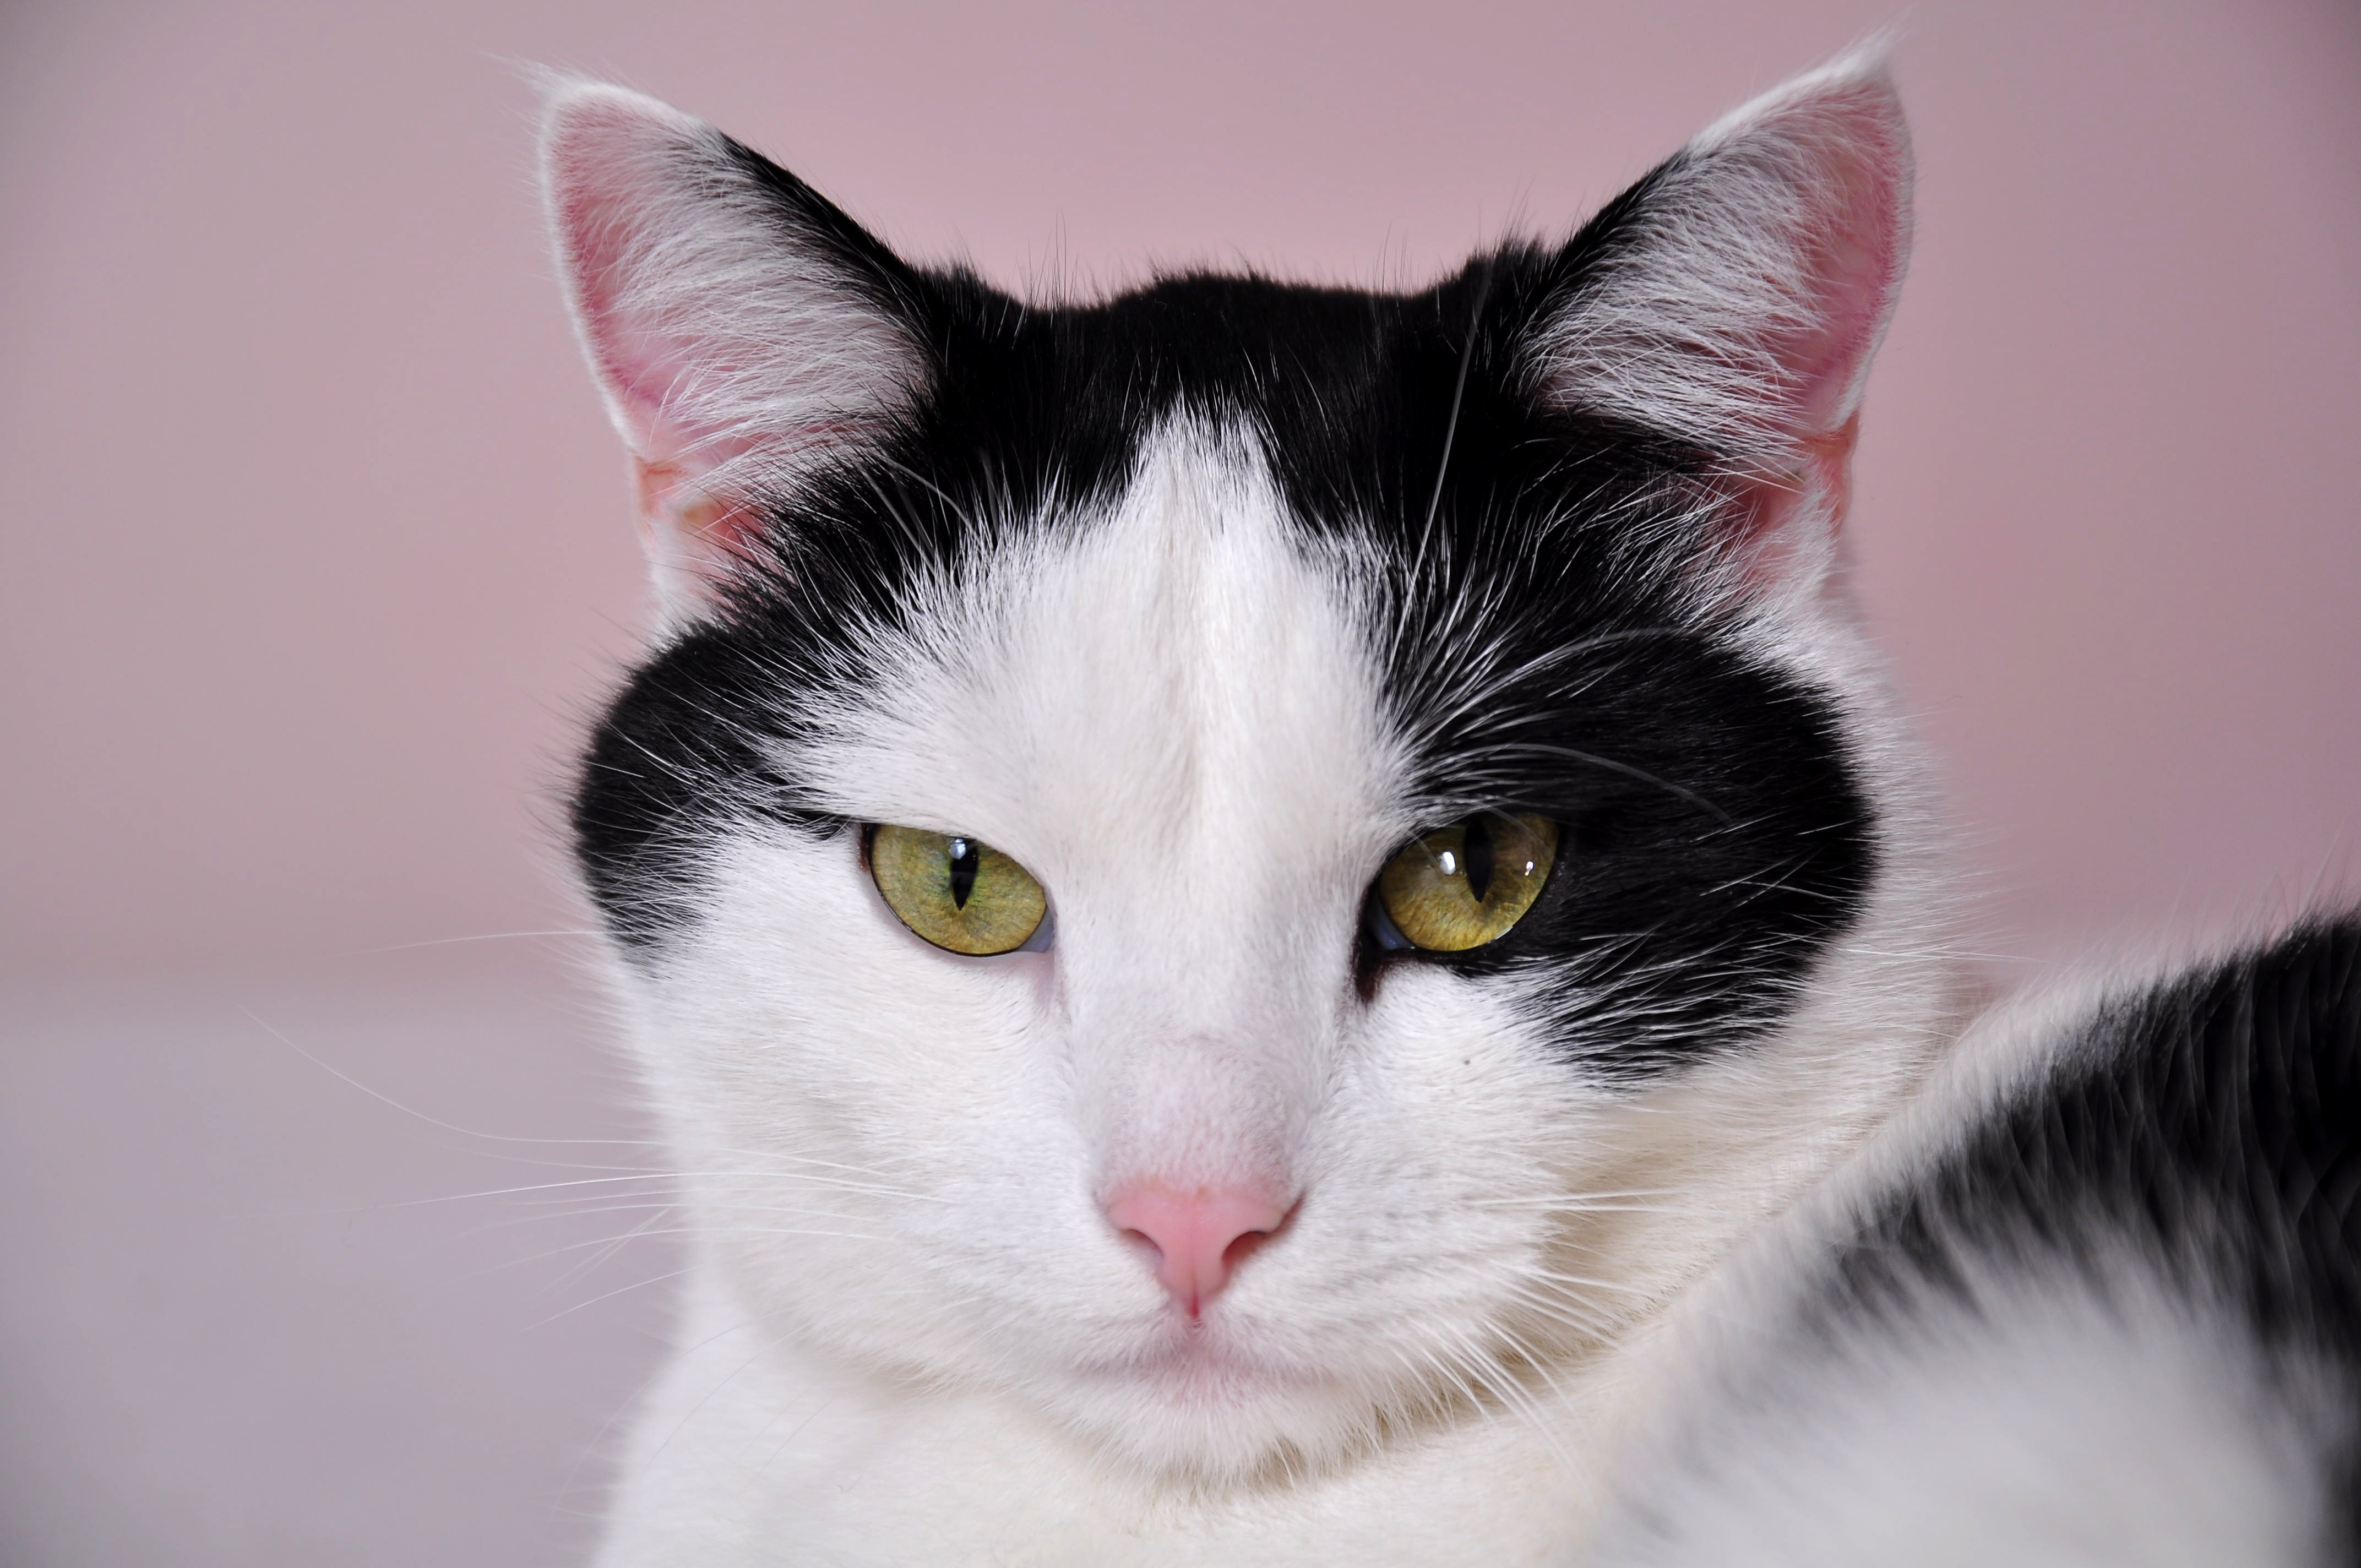 119810 download wallpaper Animals, Cat, Muzzle, Spotted, Spotty screensavers and pictures for free